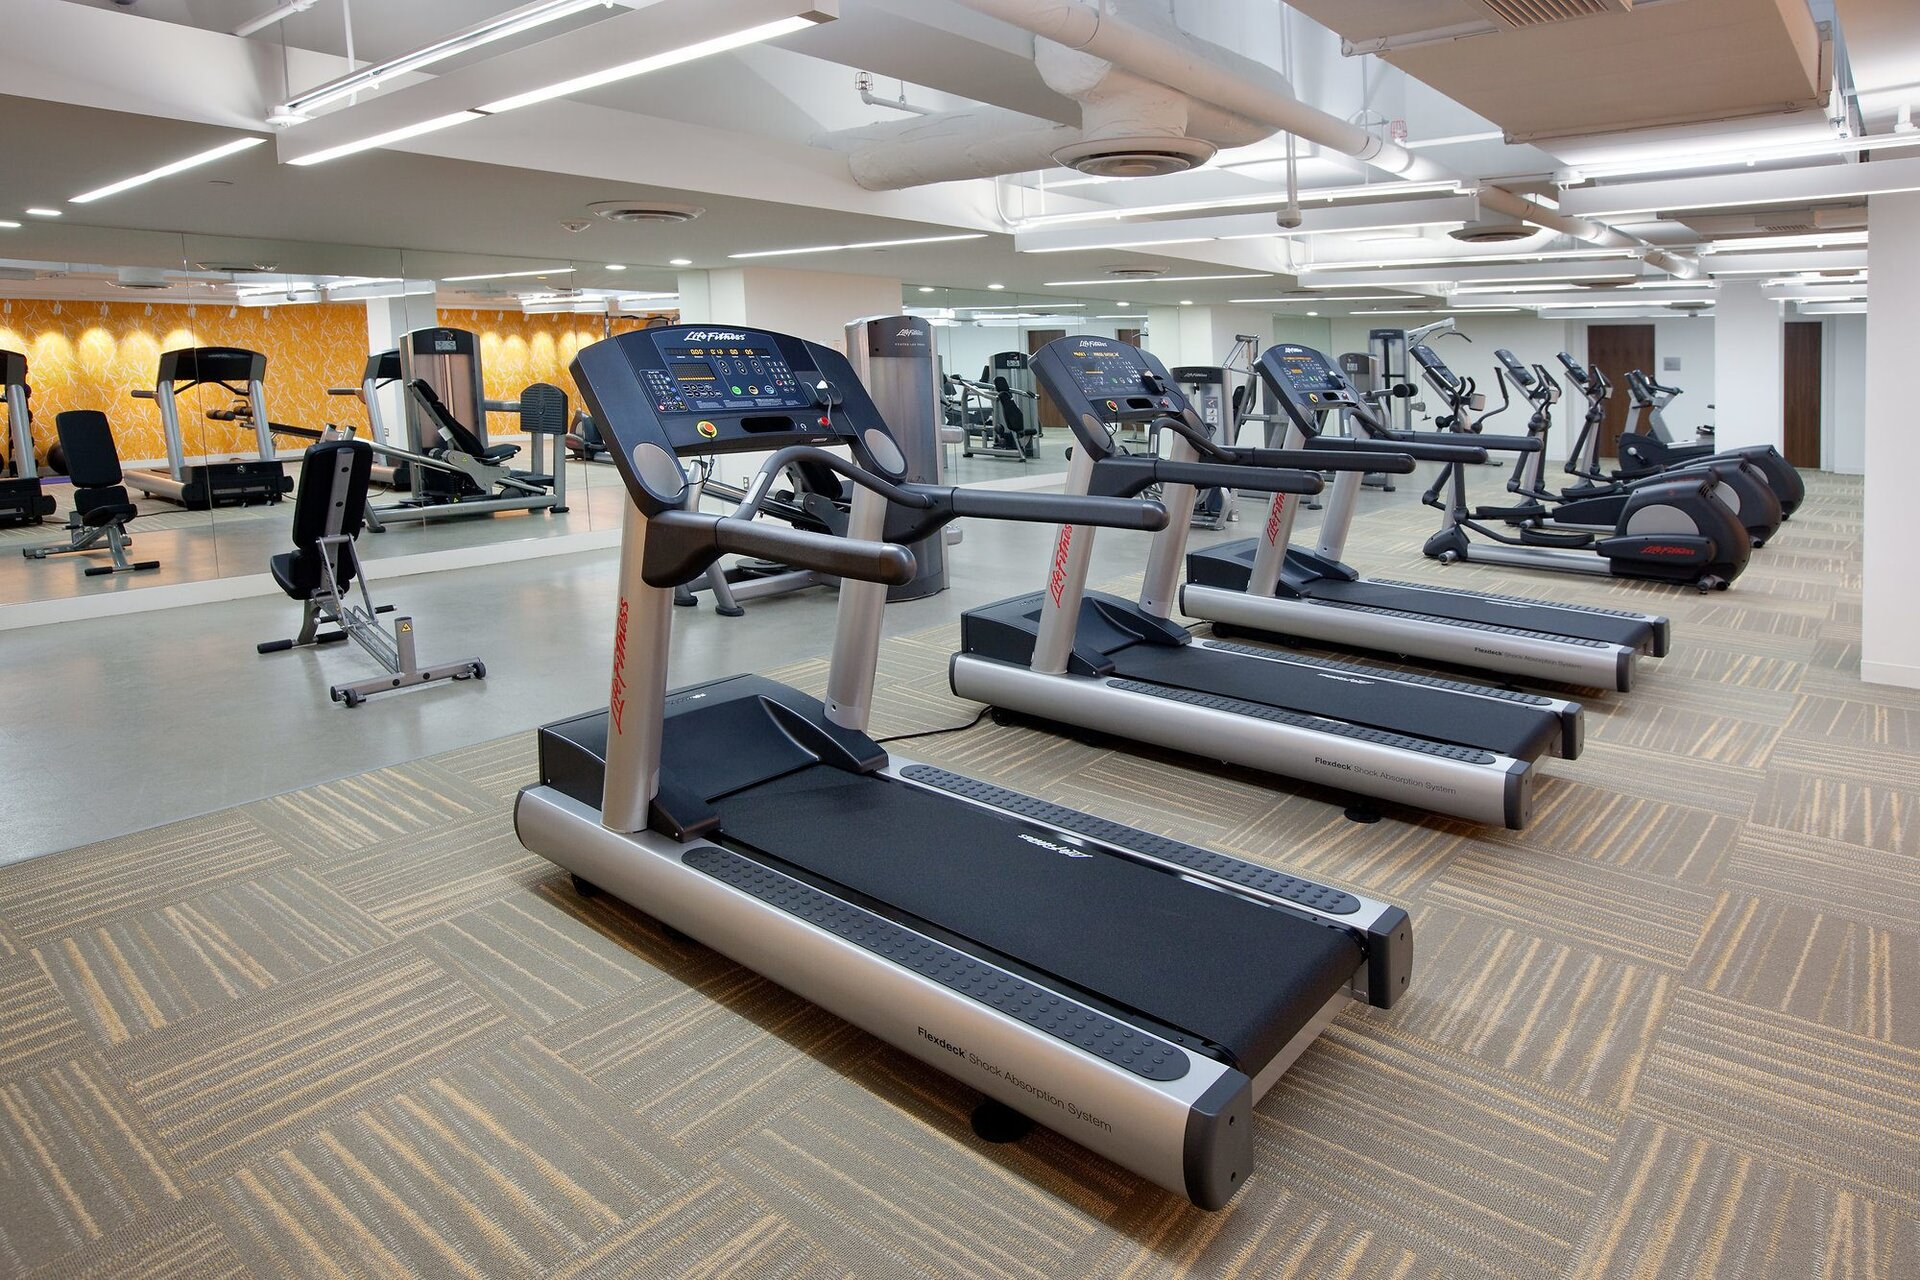 A row of treadmills and other exercise equipment line up the floor of a large gym.